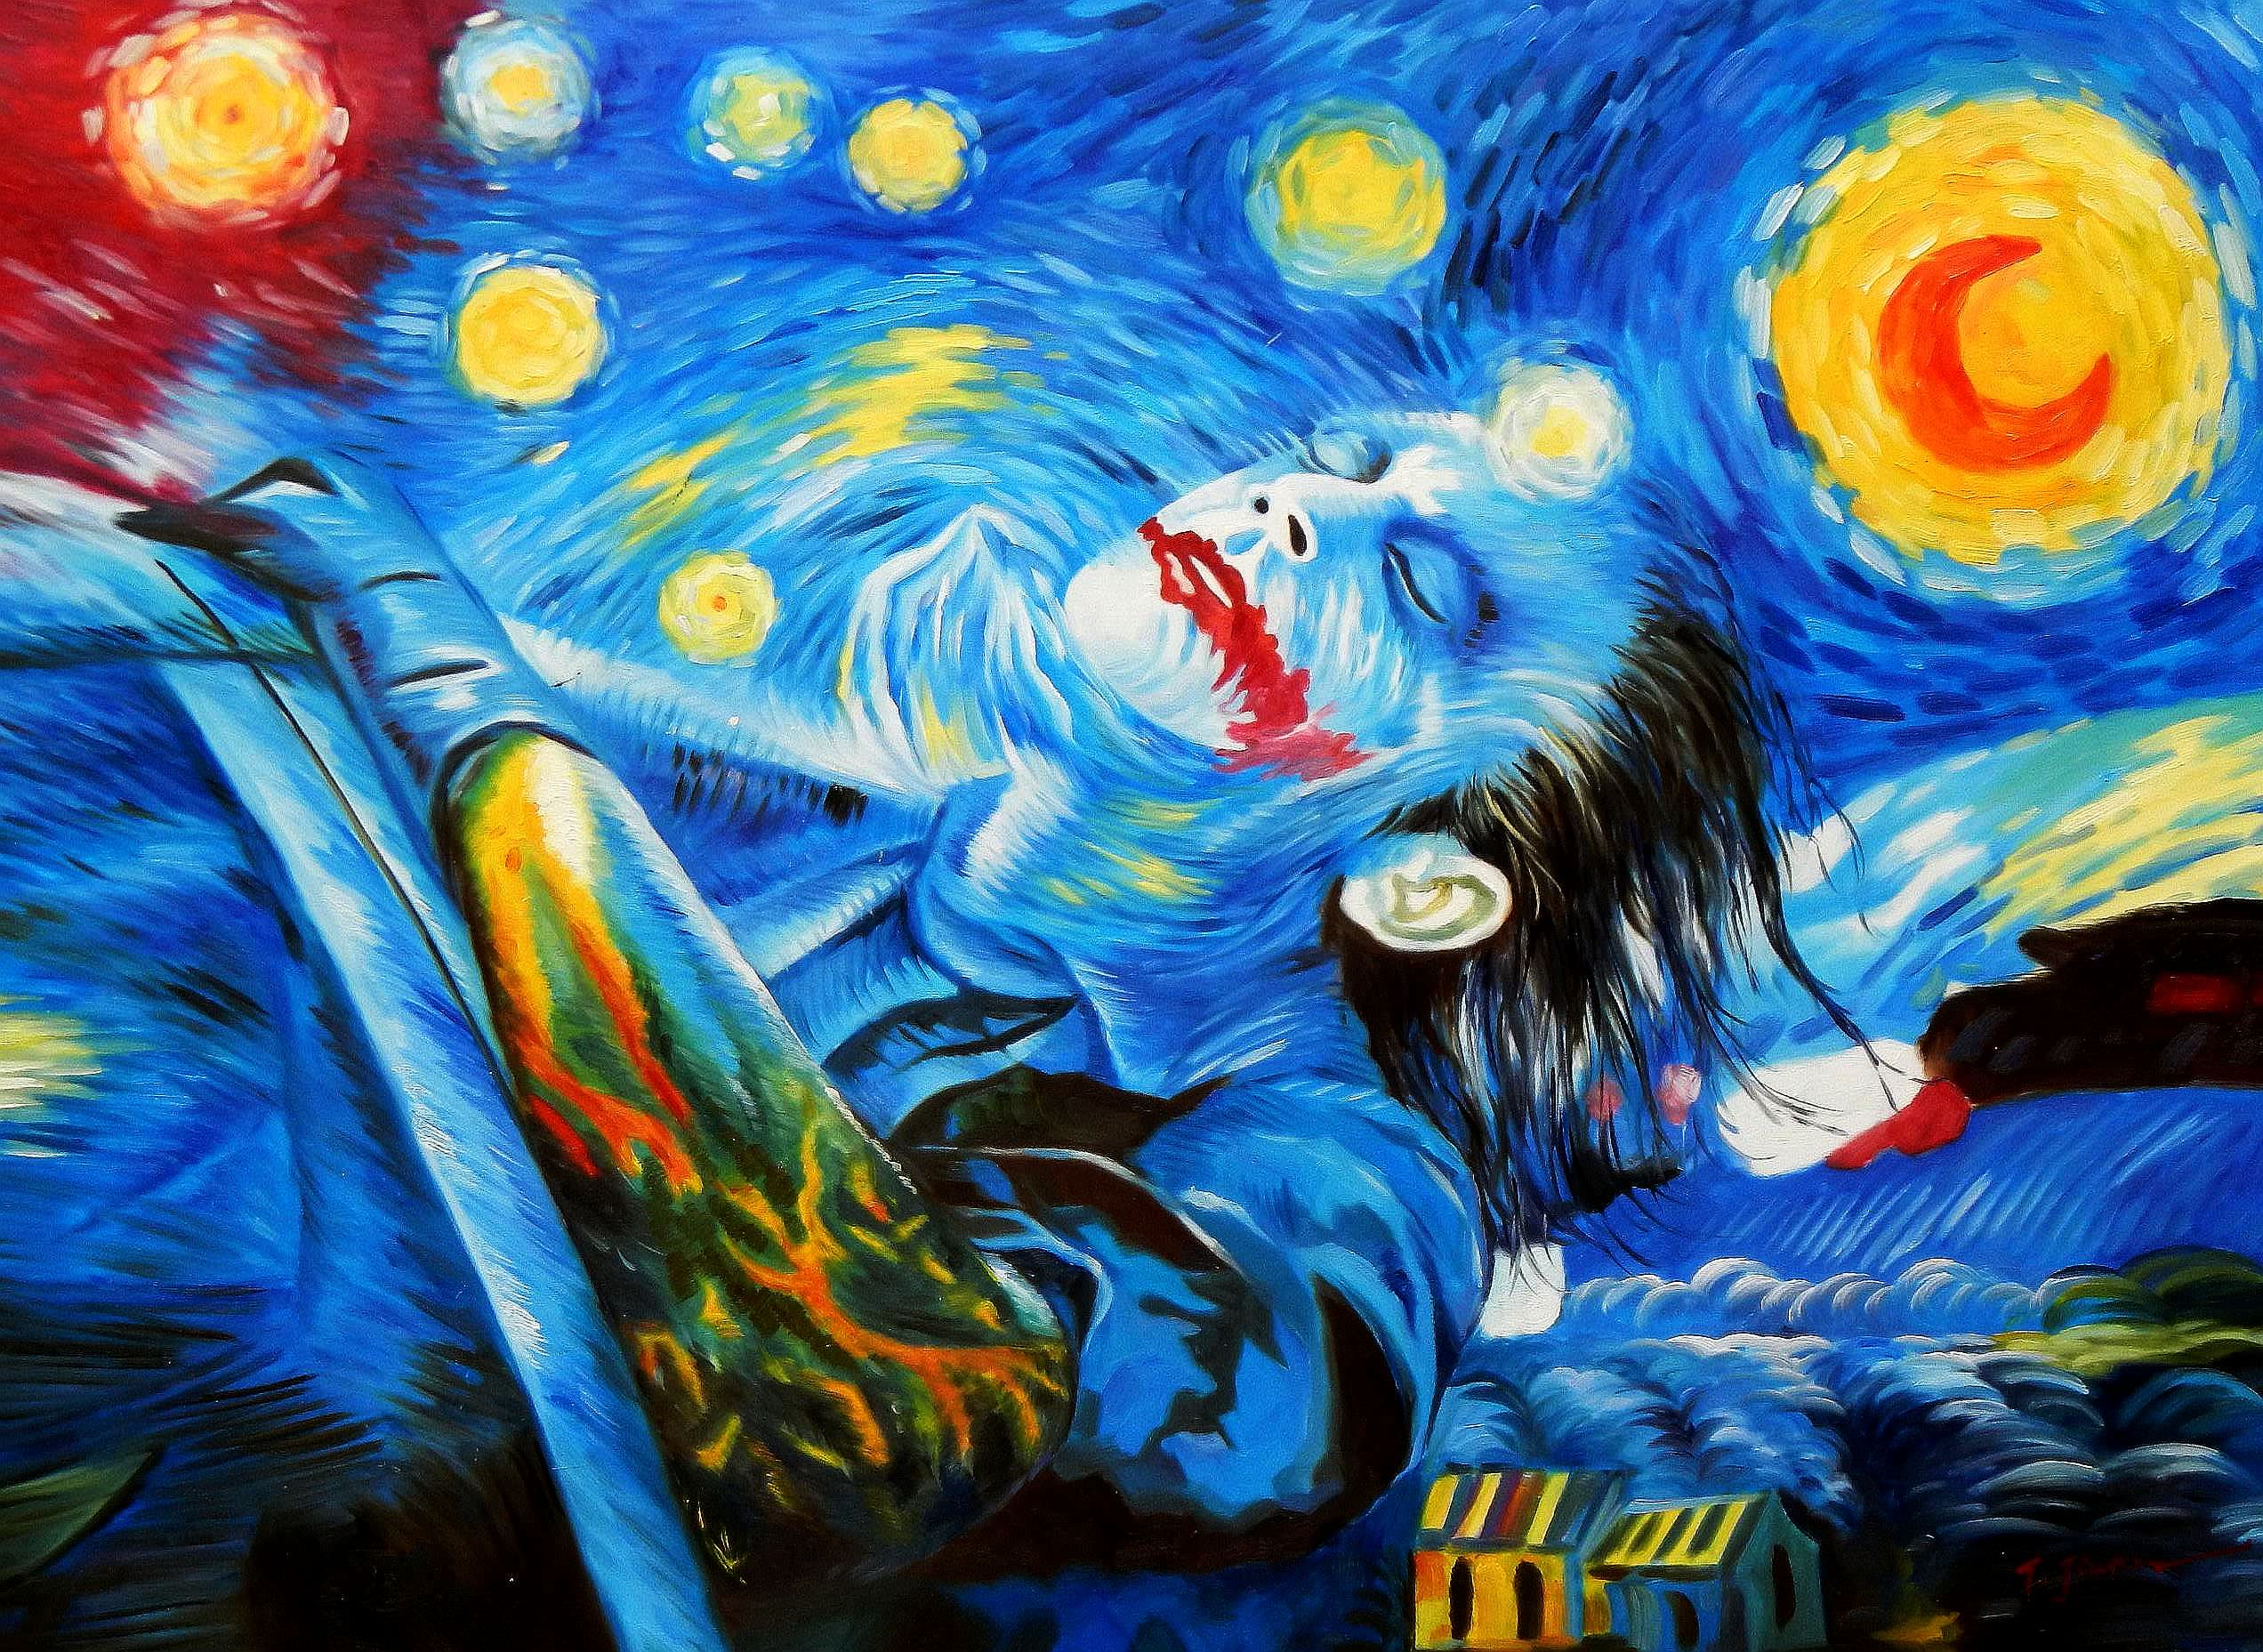 Modern Art - Joker meets starry night i91884 80x110cm exquisites Ölbild